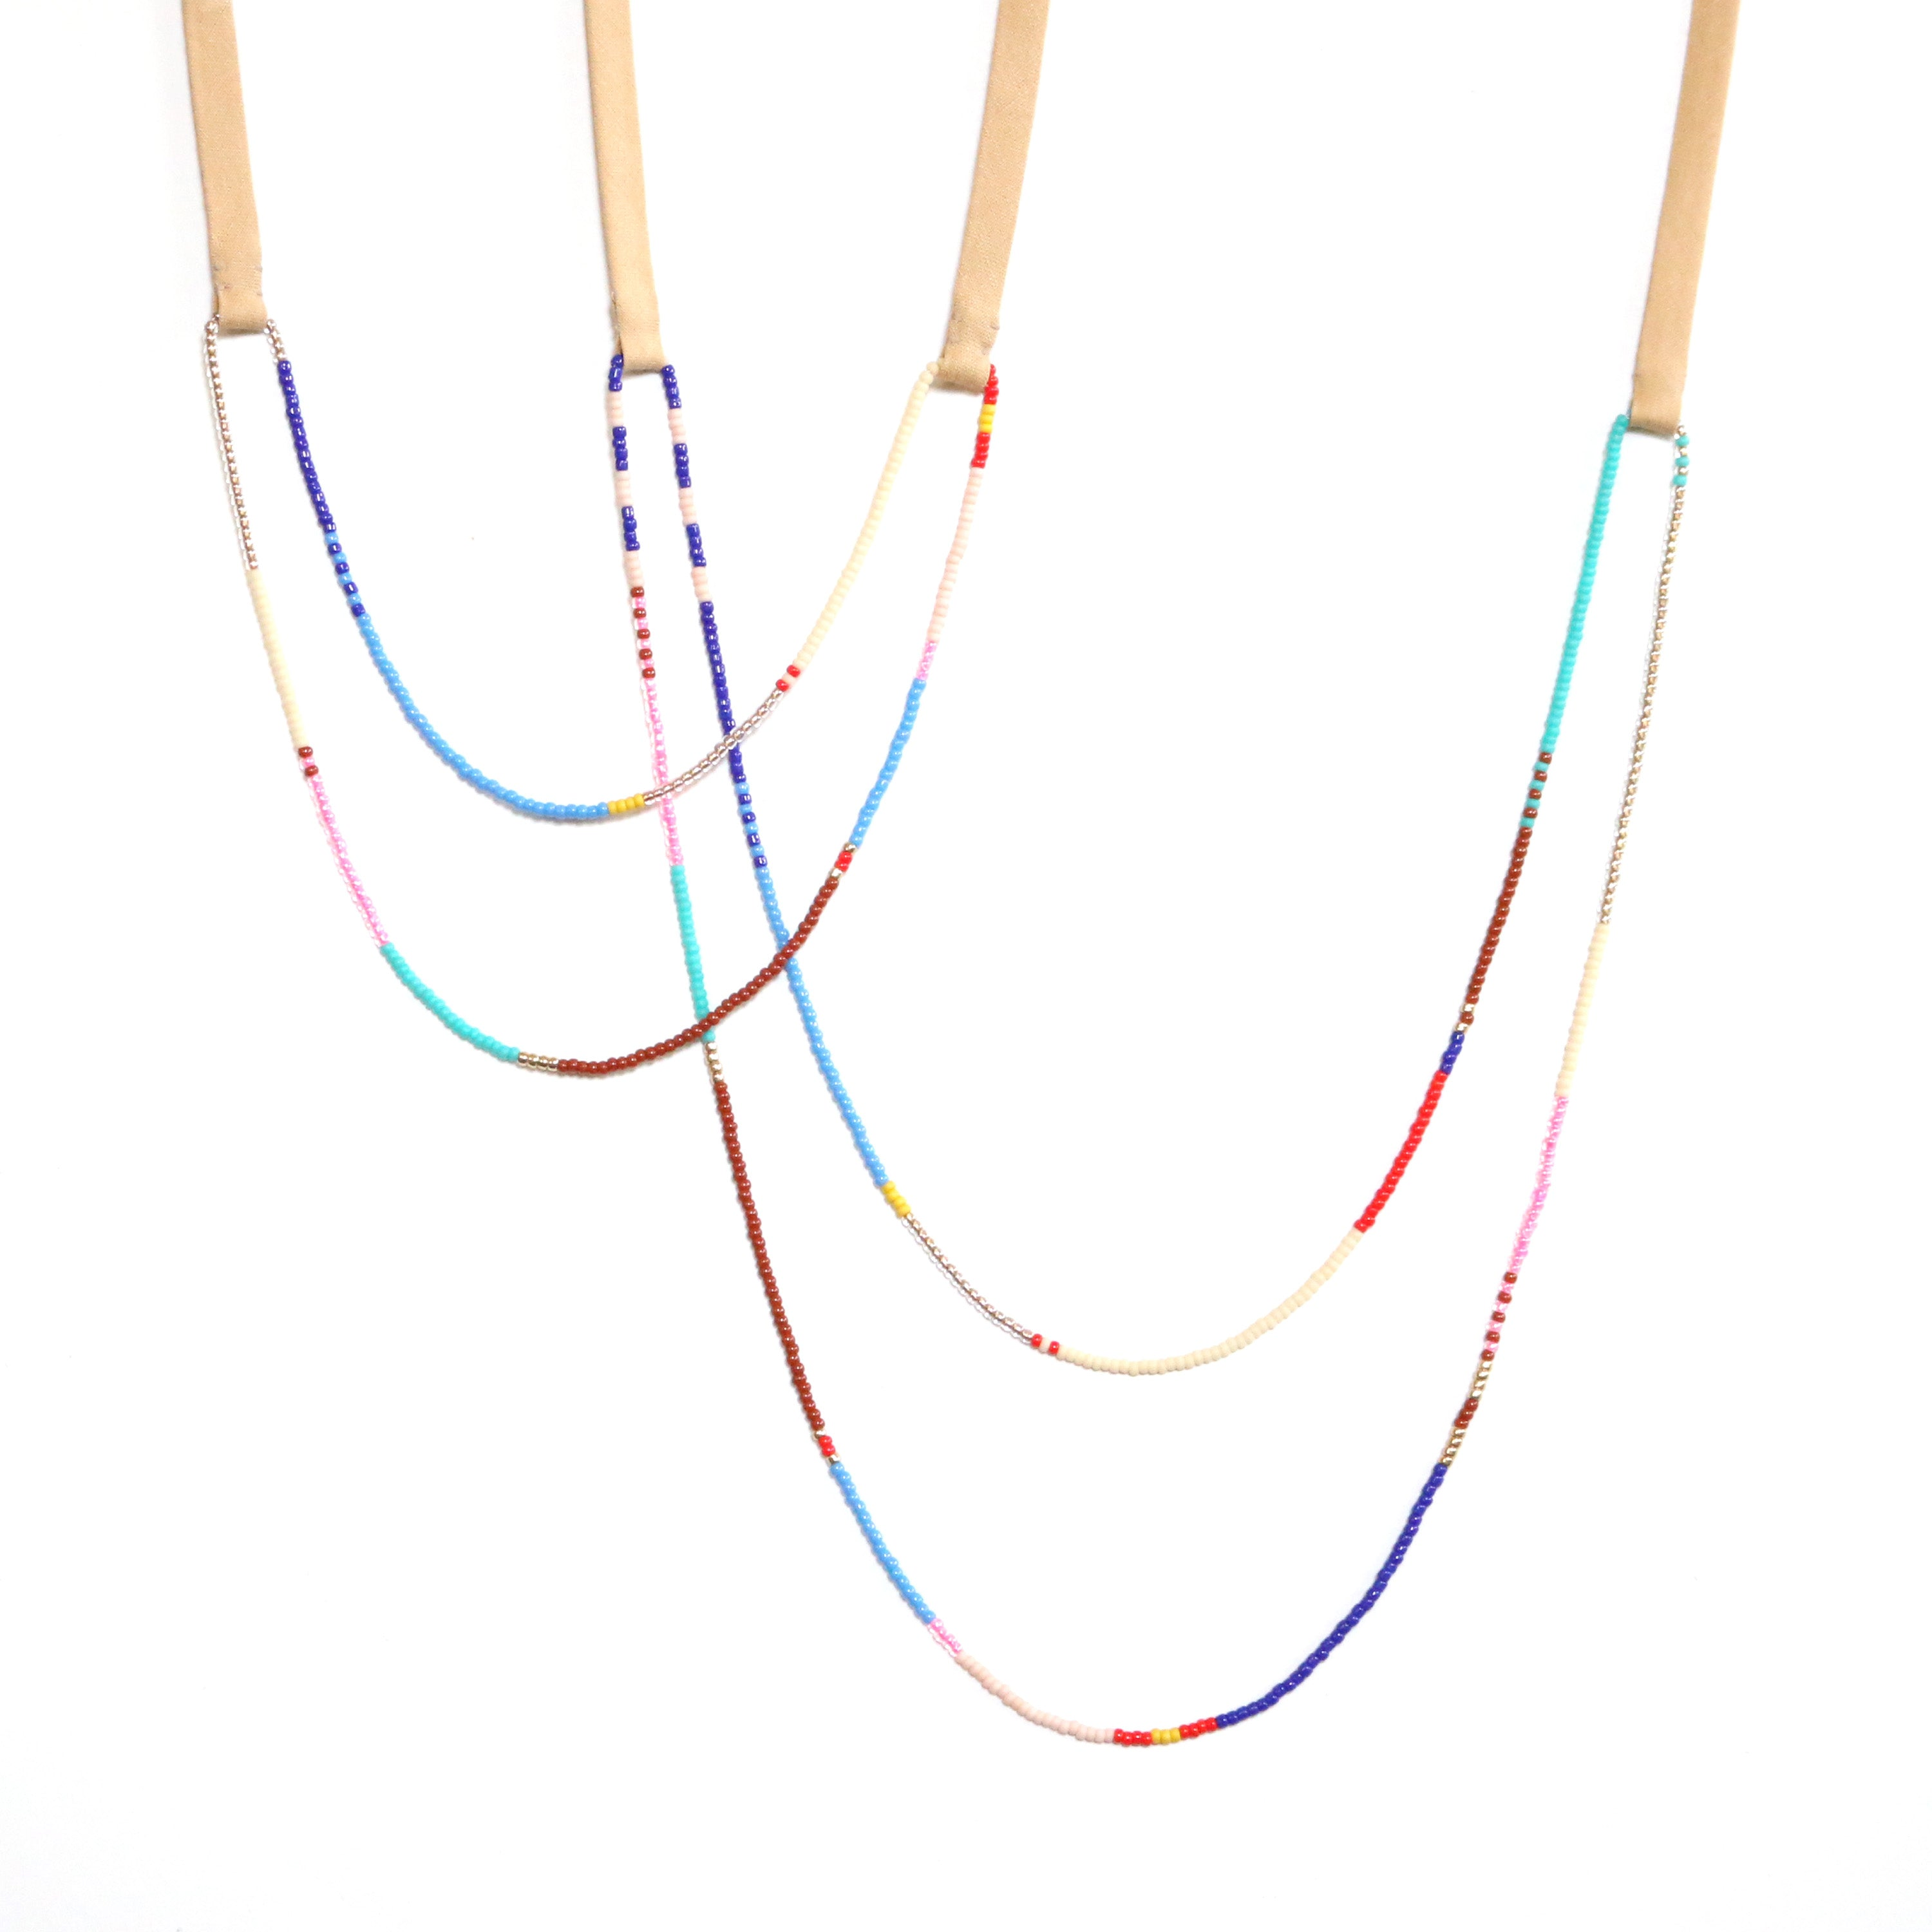 Color Story Necklace (Mix No. 5)